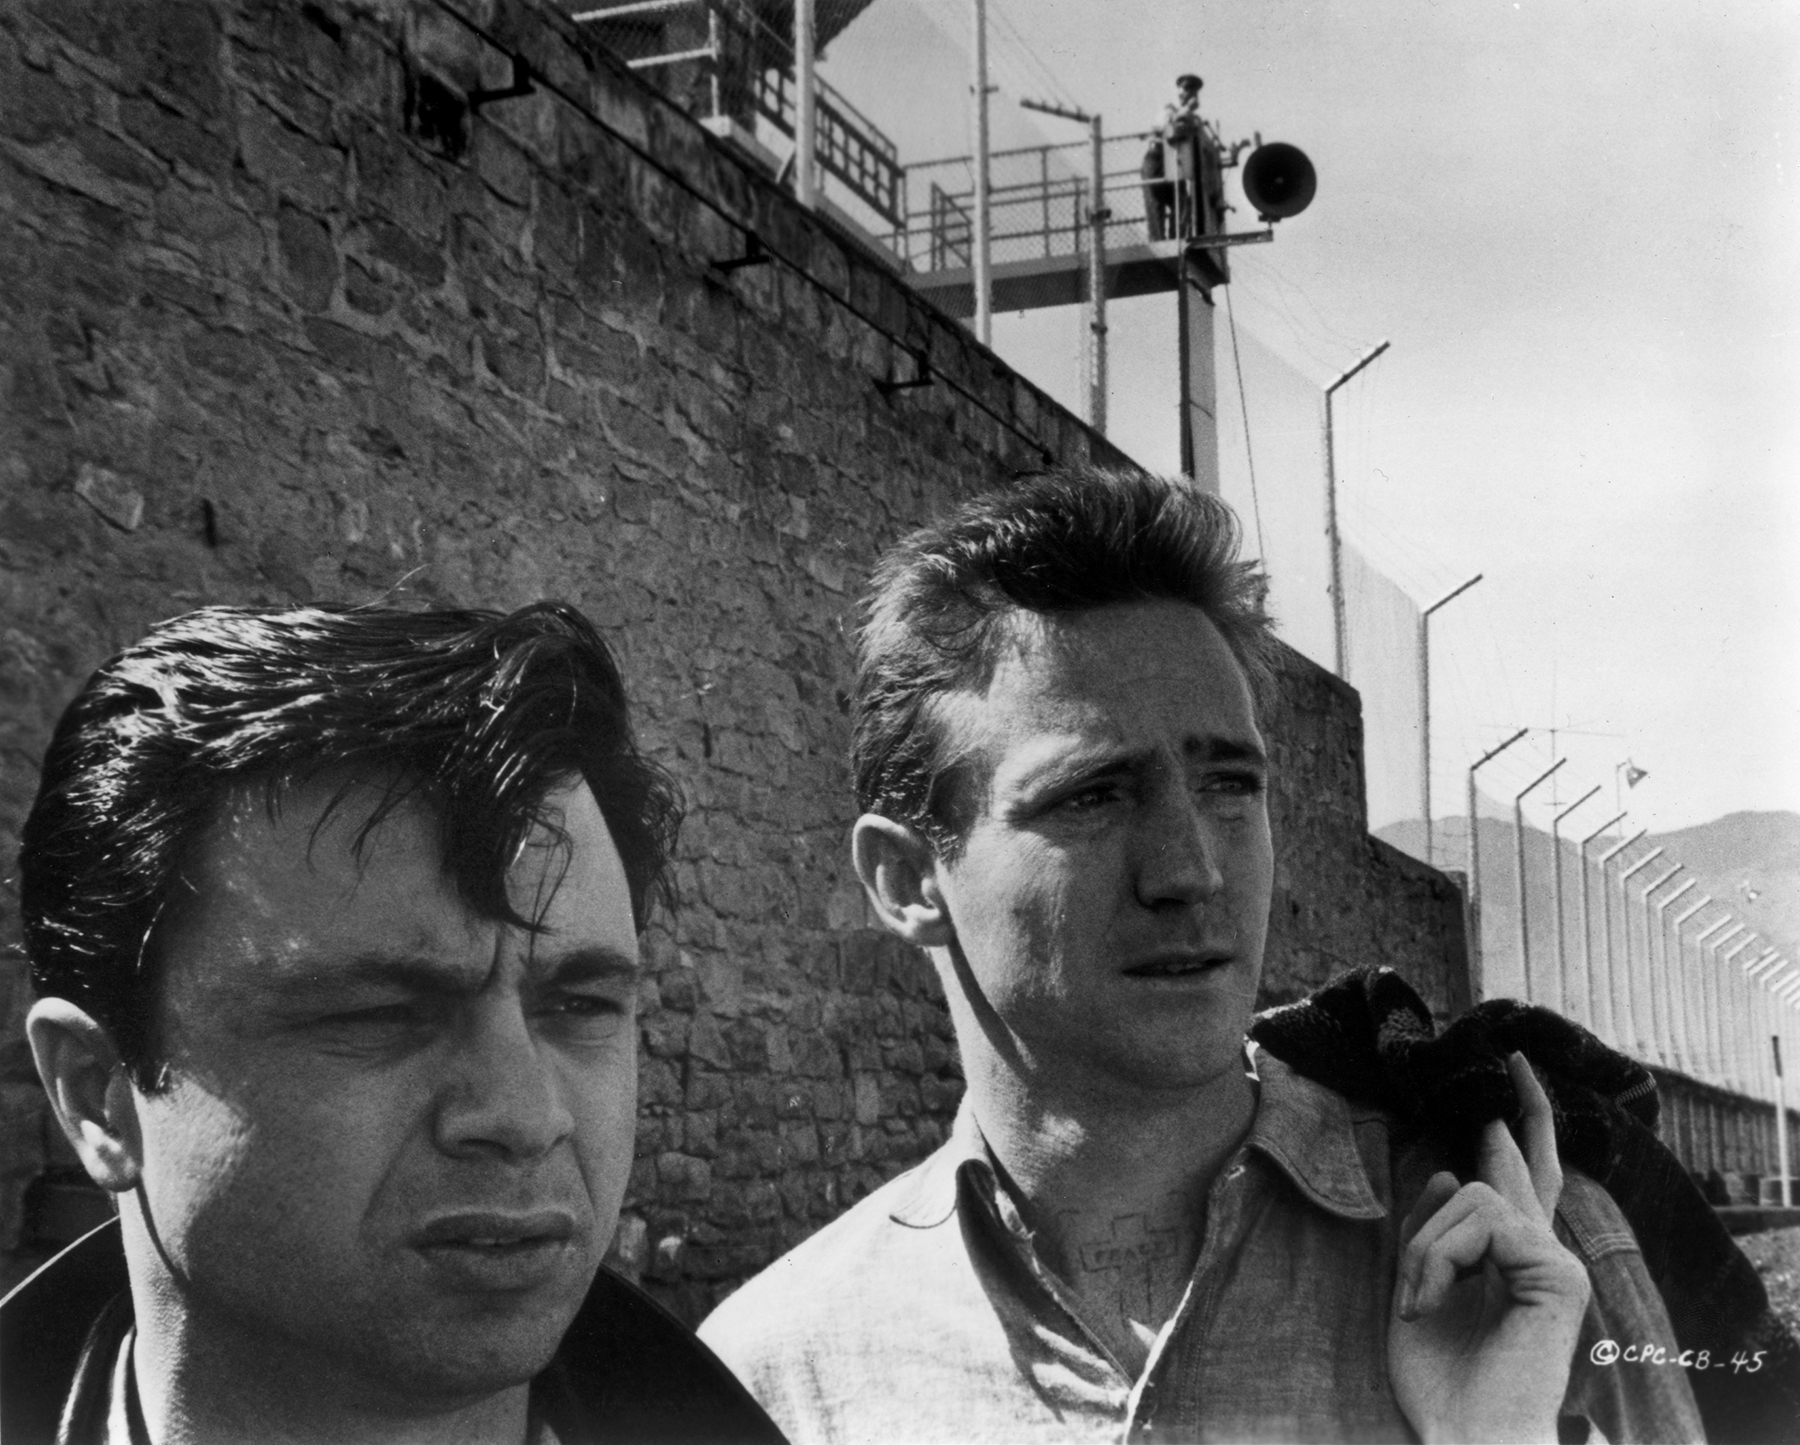 Wrap Shot: In Cold Blood - The American